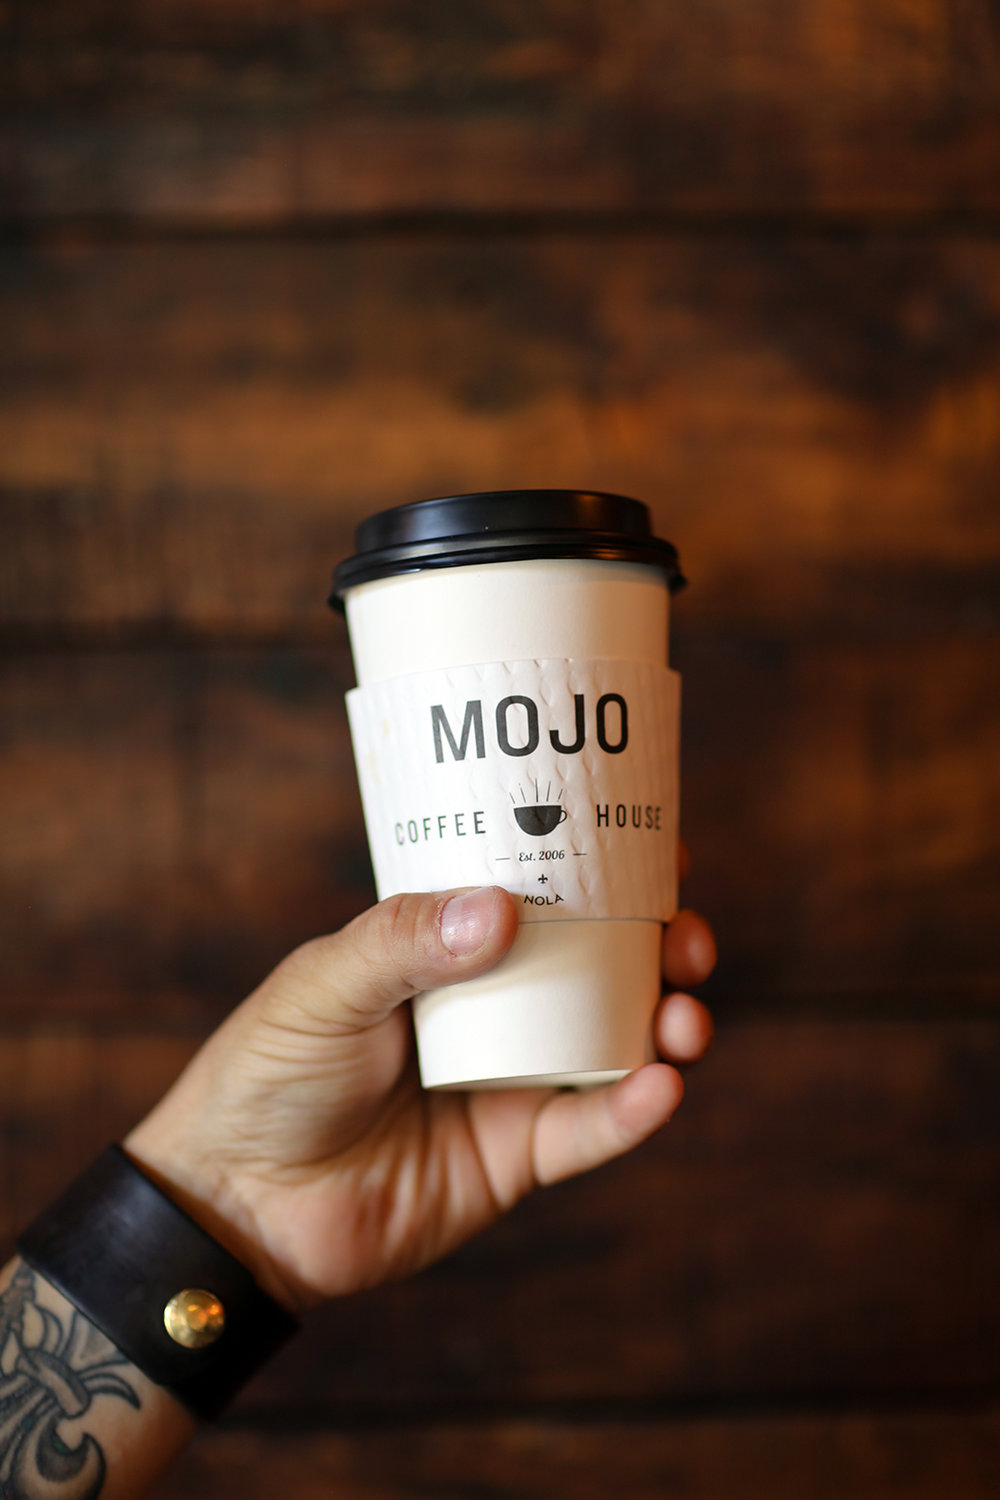 mojo-coffee-cup-in-hand.jpg